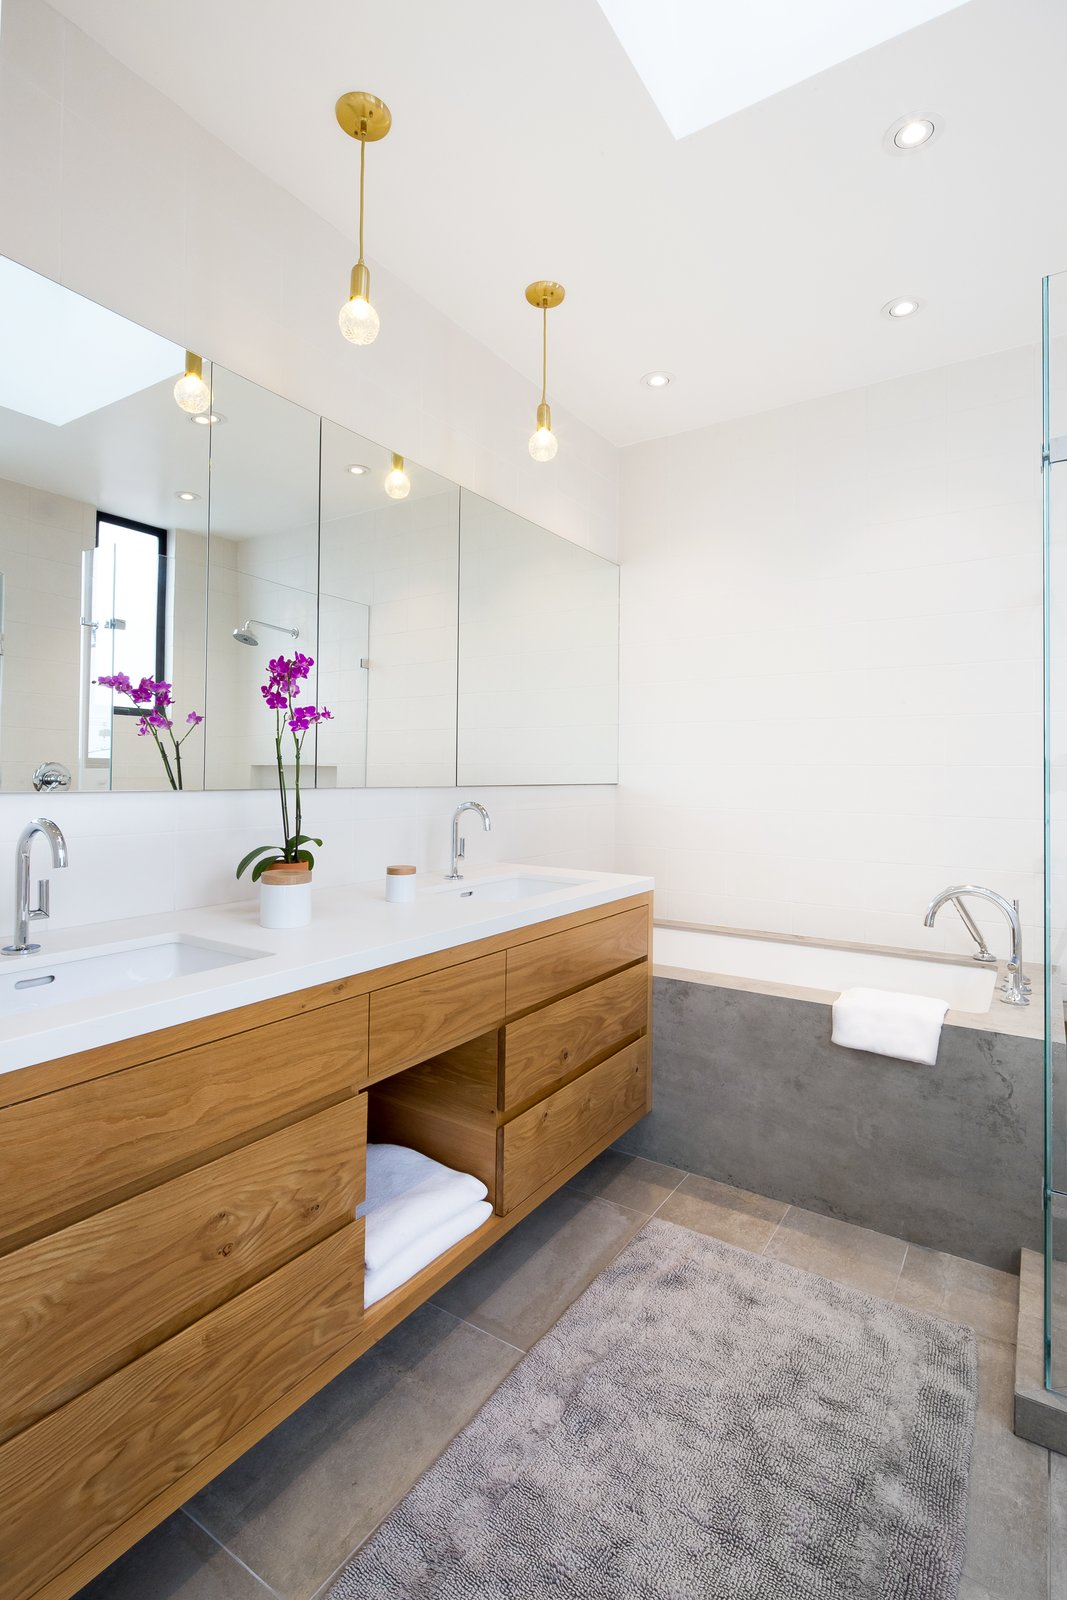 Master bath  27th Street - Noe Valley by patrick perez/designpad architecture